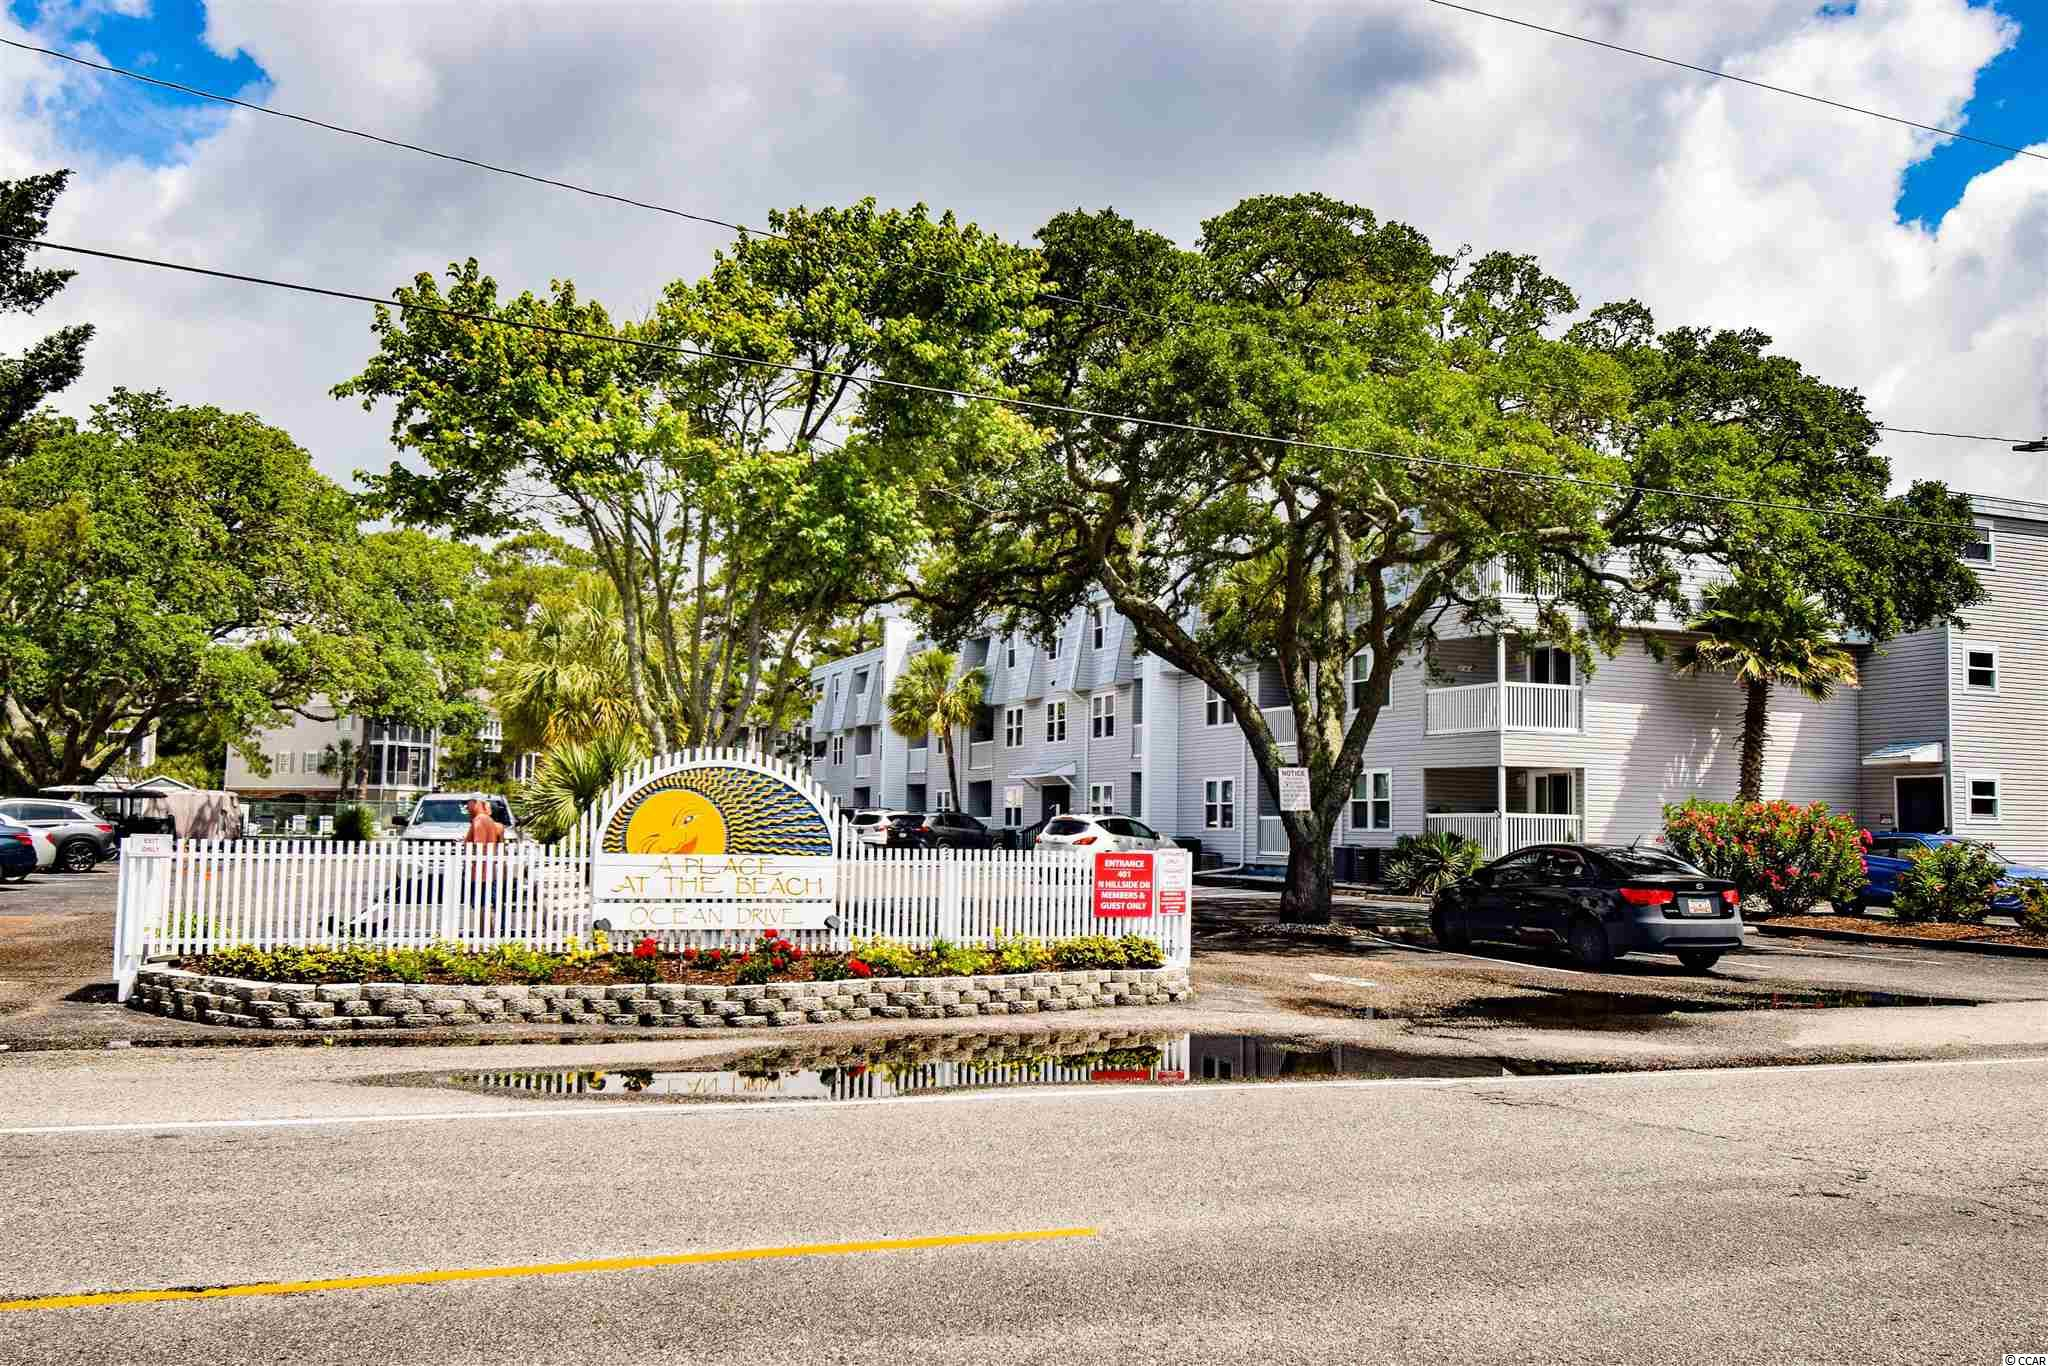 This 2 bedroom/1 bath unit is located in the Ocean Drive section of NMB. Fully equipped kitchen with all the comforts of home. The unit is on the 2nd floor. The building does NOT have an elevator.   The Living Room has a flat screen cable TV/DVD. Free WiFi in unit. The functional kitchen has a stove, refrigerator, microwave and Keurig. The master bedroom has 1 King size bed and cable TV/DVD. The guest room has 2 Full size beds and cable TV/DVD.  Balcony doors were replaced in 2020, New HVAC in 2019 along with new refrigerator and oven/stove. ONLY ONE BLOCK TO BEACH